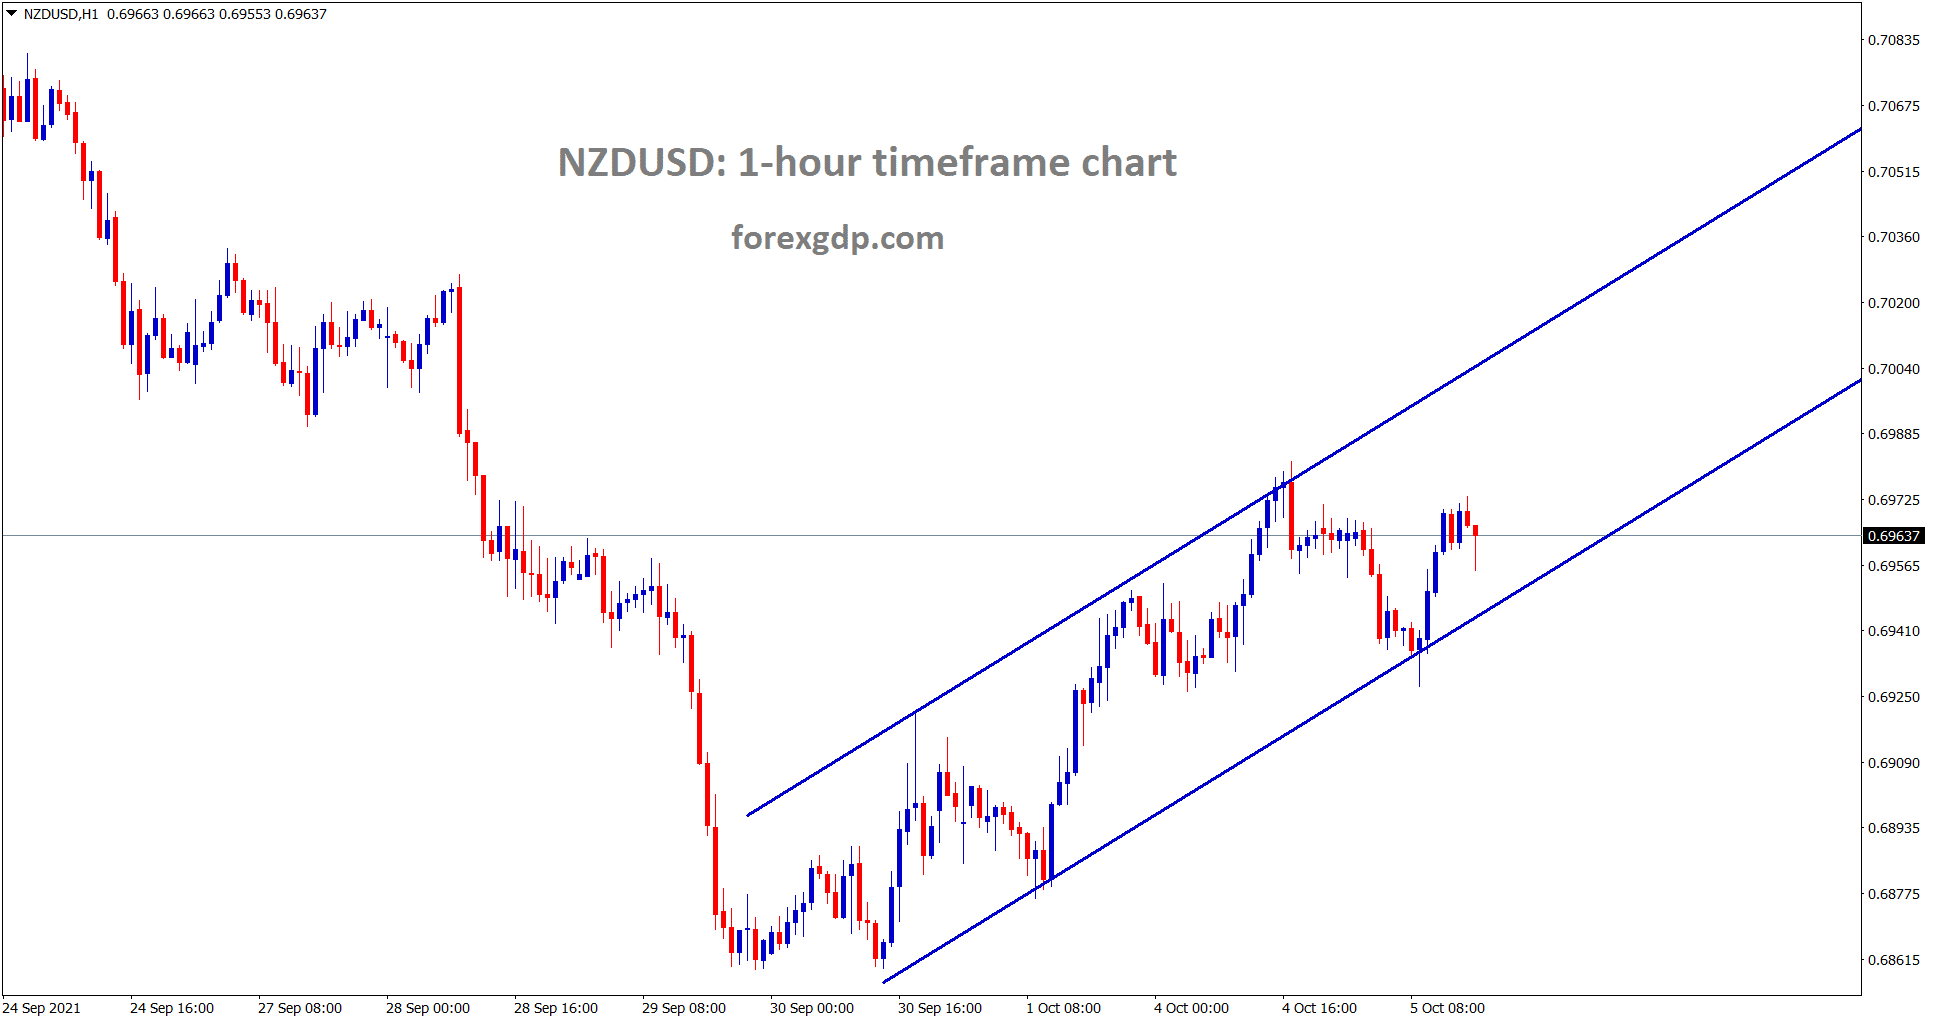 NZDUSD is moving in an ascending channel tomorrow we have NZD interest rate news Expecting positive news for NZD